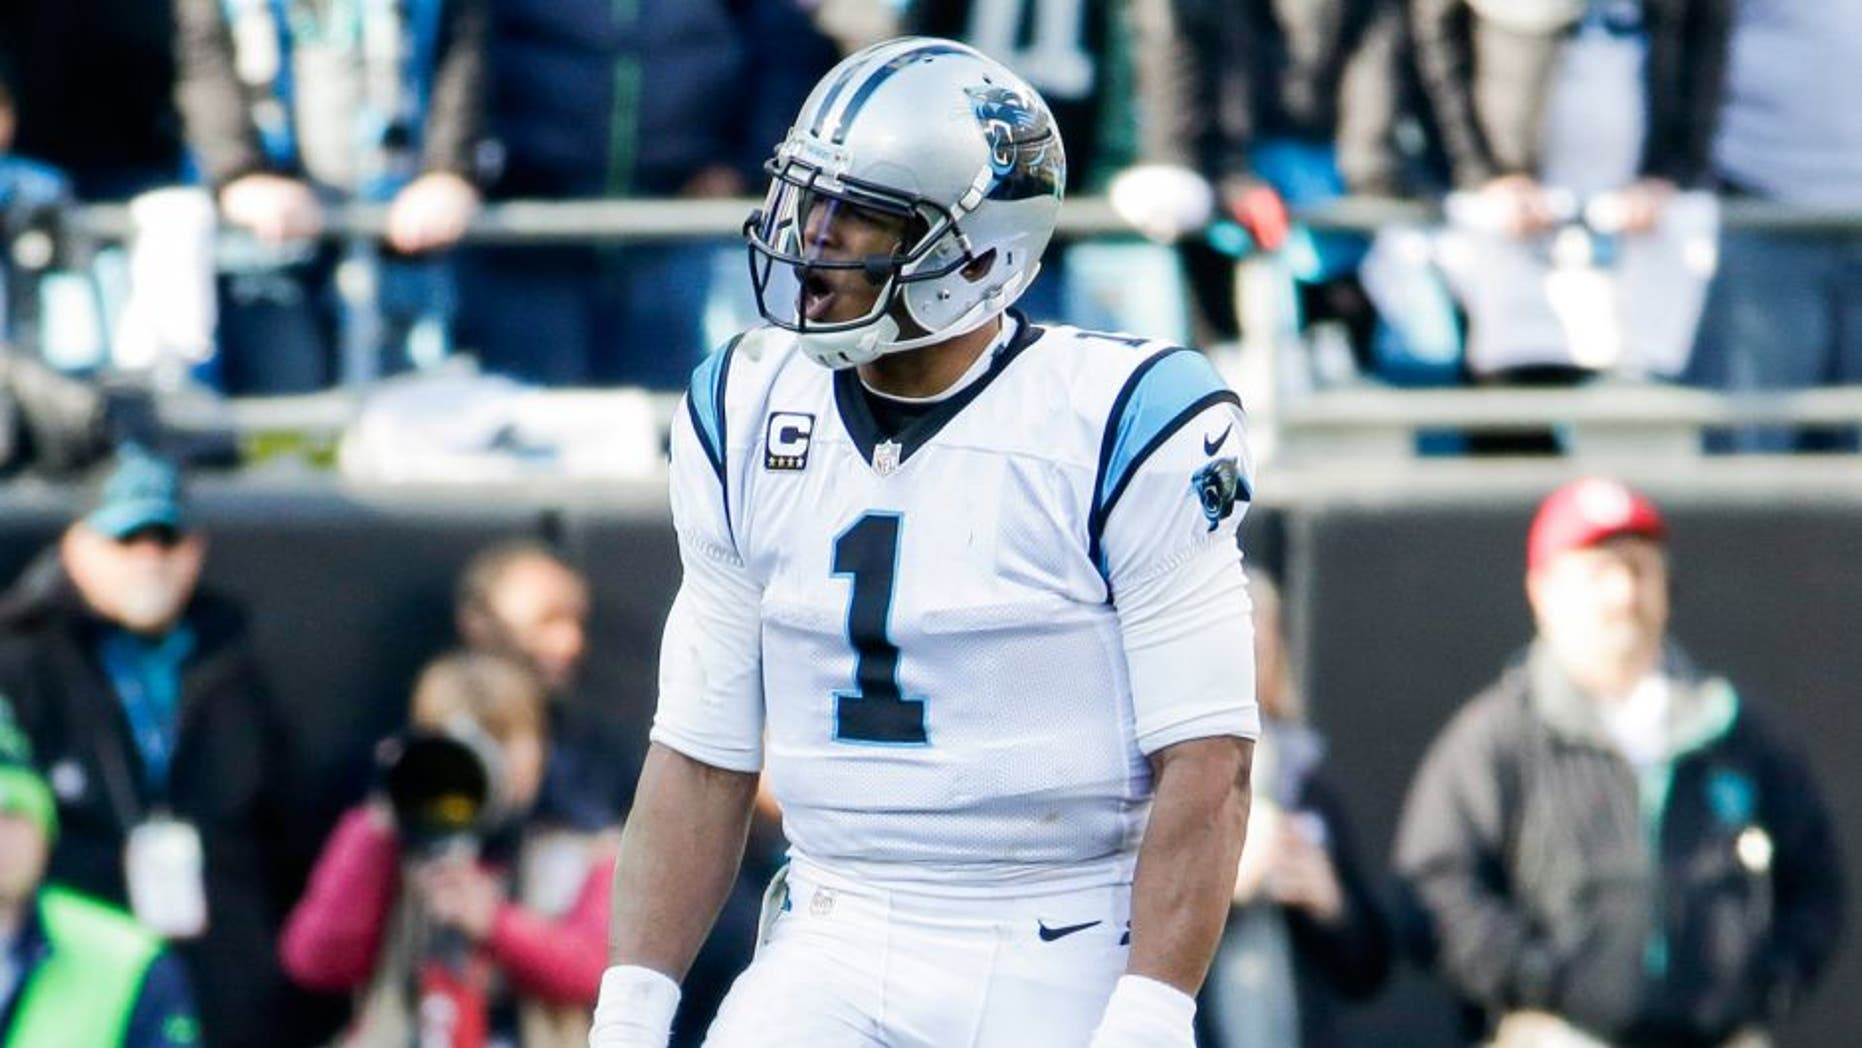 Jan 17, 2016; Charlotte, NC, USA; Carolina Panthers quarterback Cam Newton (1) reacts during the fourth quarter against the Seattle Seahawks in a NFC Divisional round playoff game at Bank of America Stadium. Mandatory Credit: Jeremy Brevard-USA TODAY Sports